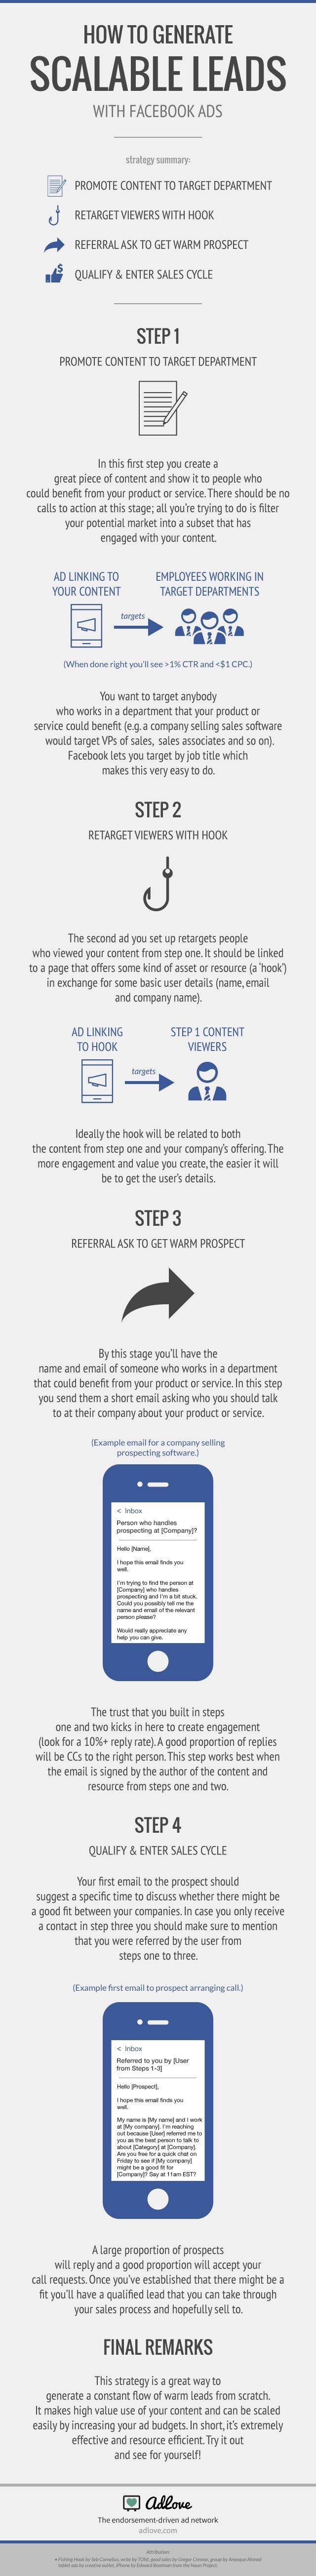 Endorsement-driven advertising network Adlove shared its strategy for business-to-business companies to generate leads via Facebook ads, in infographic form.